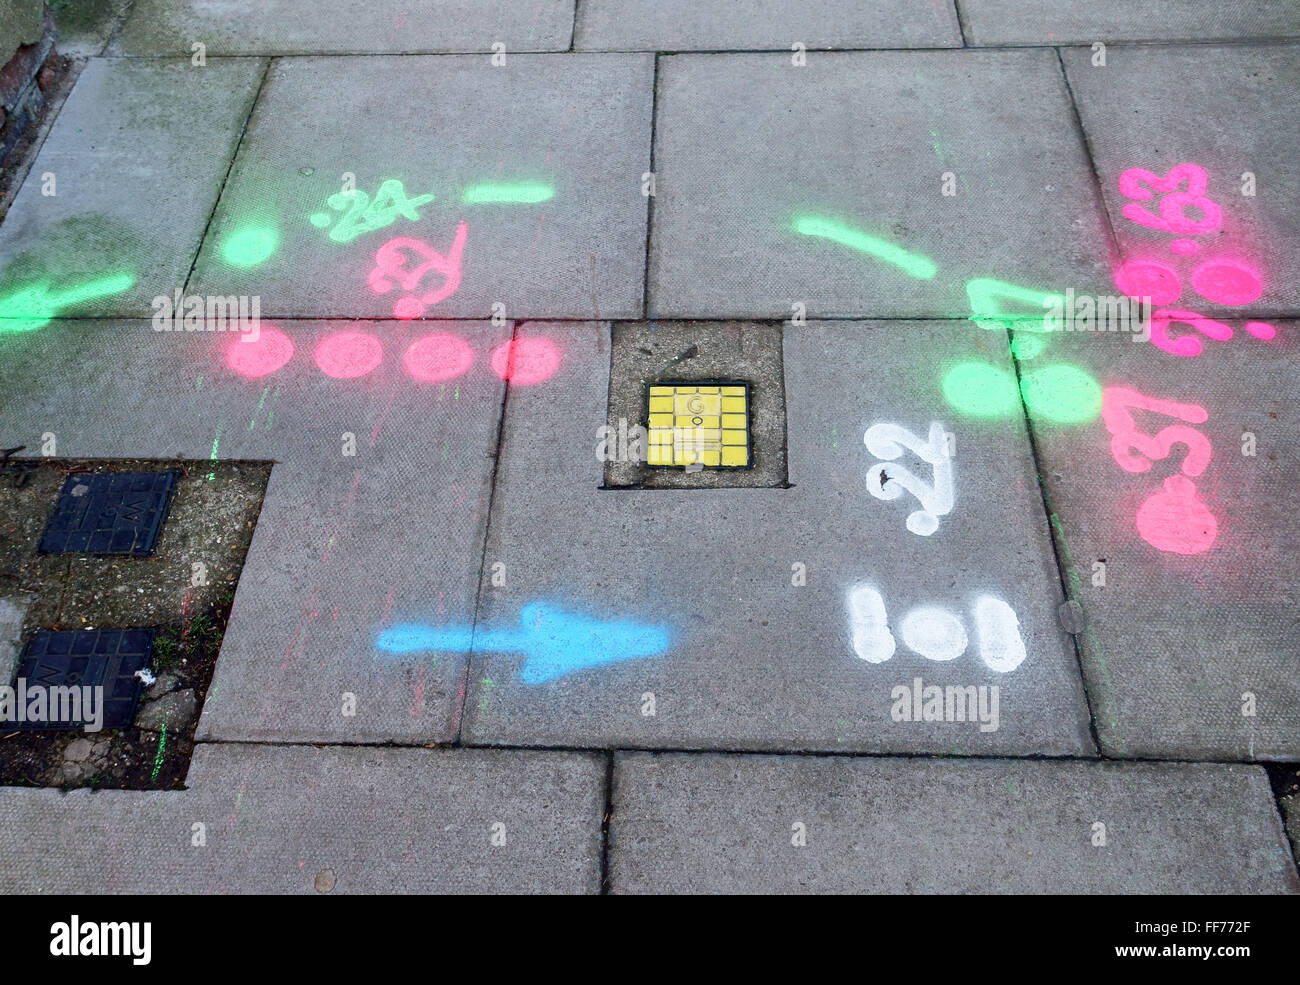 Painted marks on pavement prior to utilities excavations, London - Stock Image